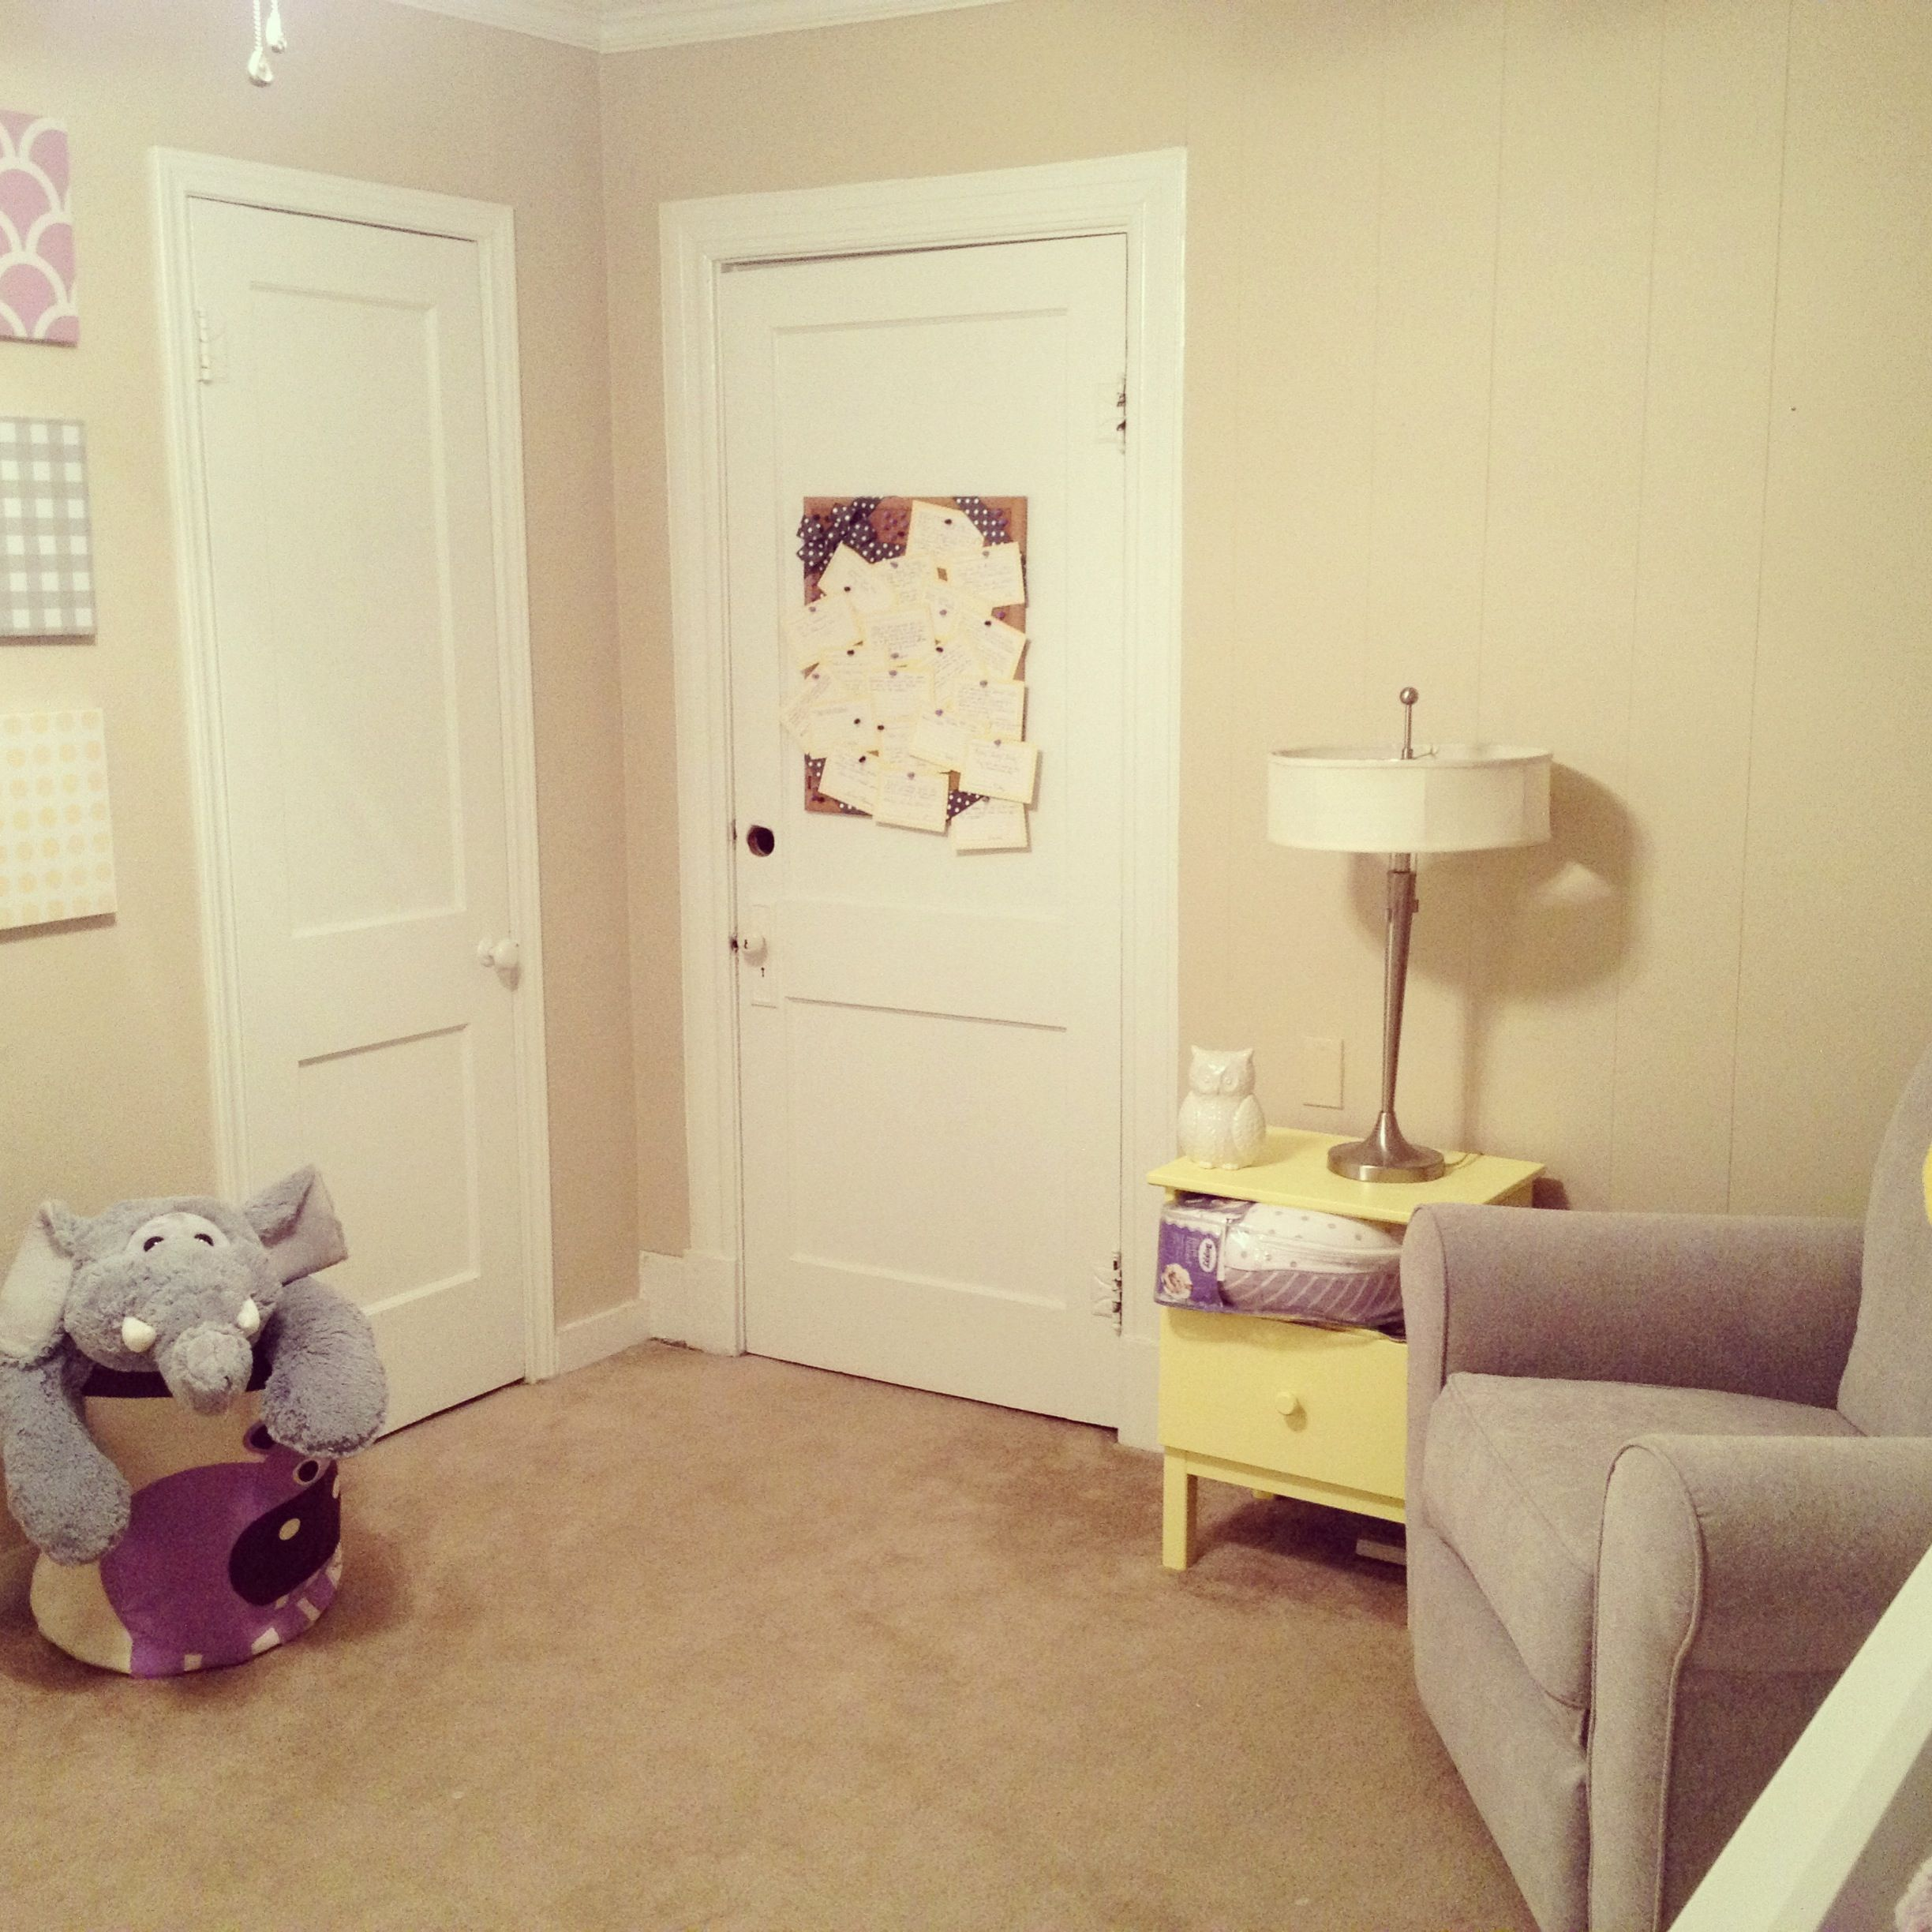 Purple and yellow and grey nursery Wall pictures - target Toy bin ...